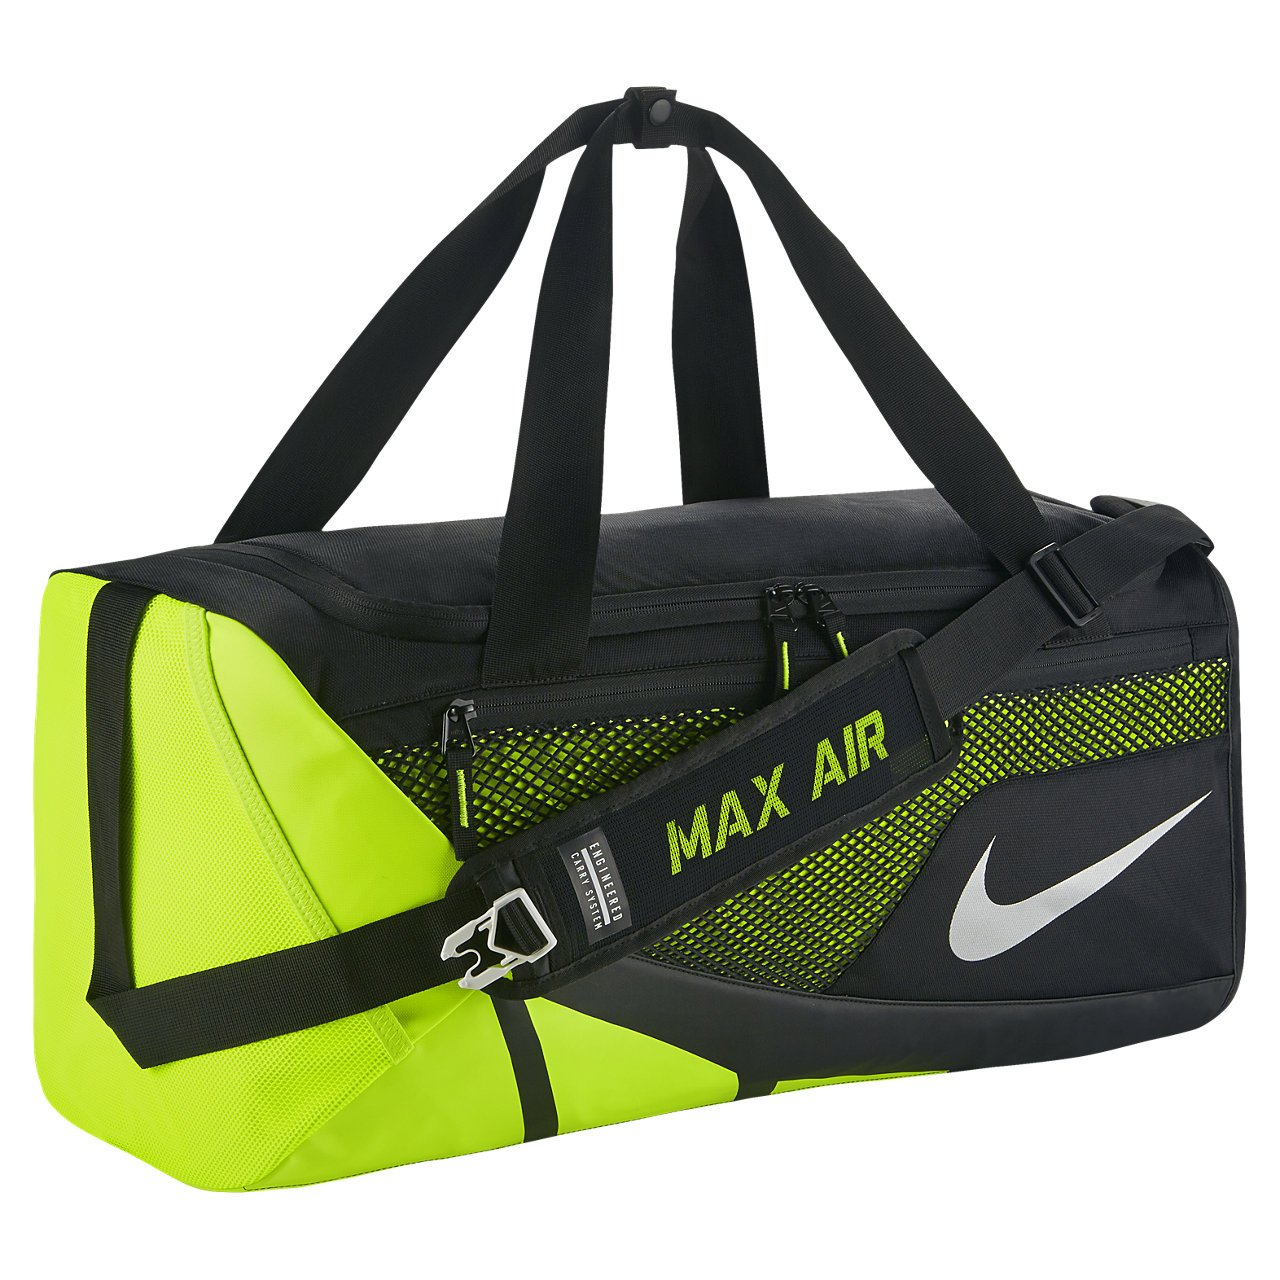 Nike Vapor Max Air 2.0 Medium Duffel Bag (Medium, Black/Volt/Metallic Silver) by NIKE